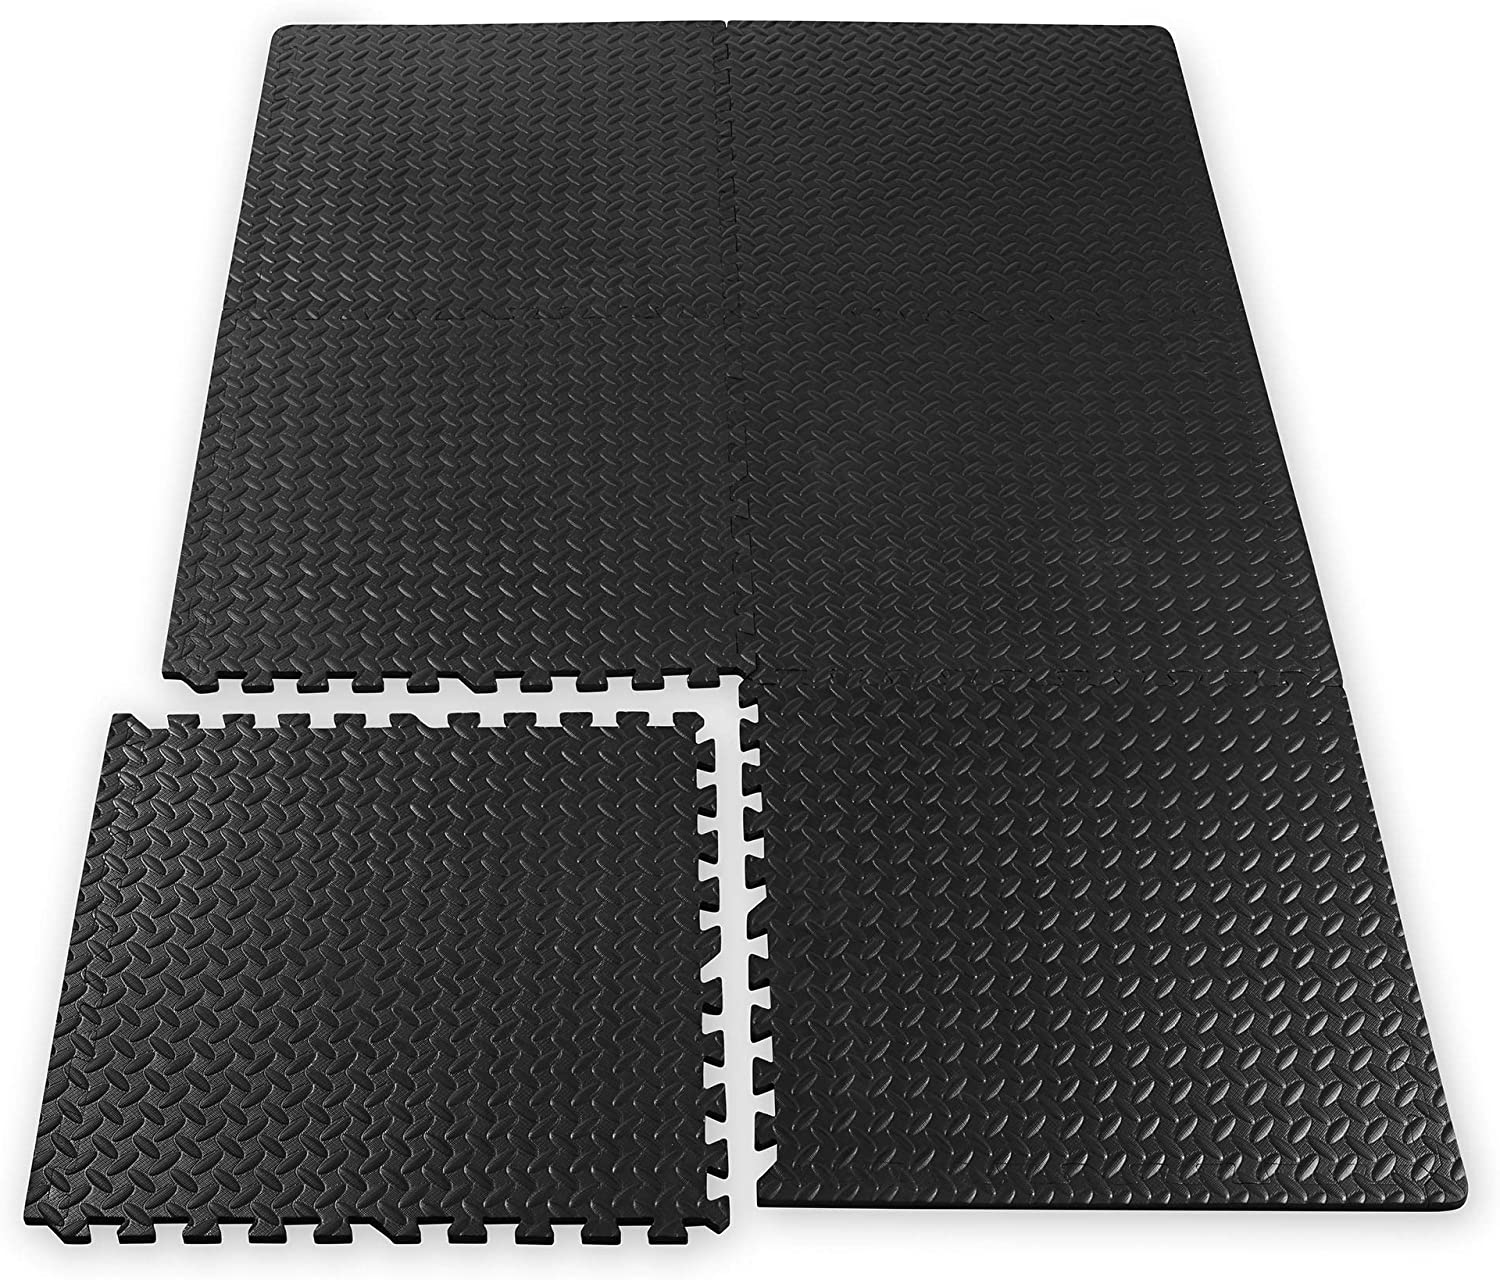 Gaiam Exercise Mats Interlocking